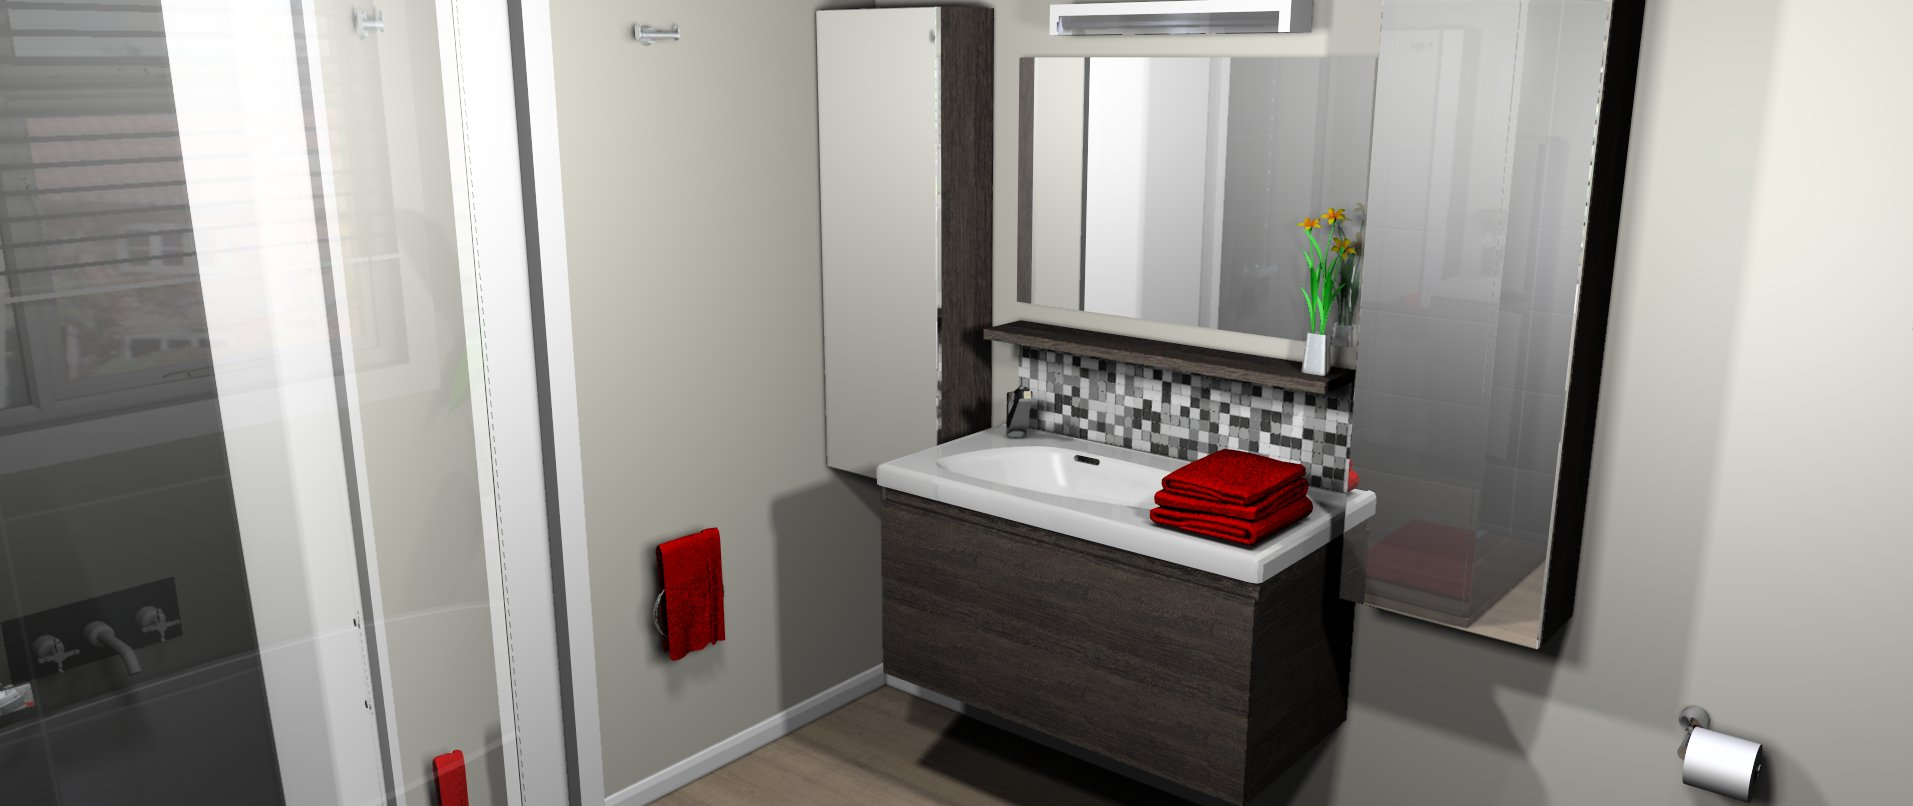 Bathroom Design Nz Christchurch 2017 2018 Best Cars Reviews